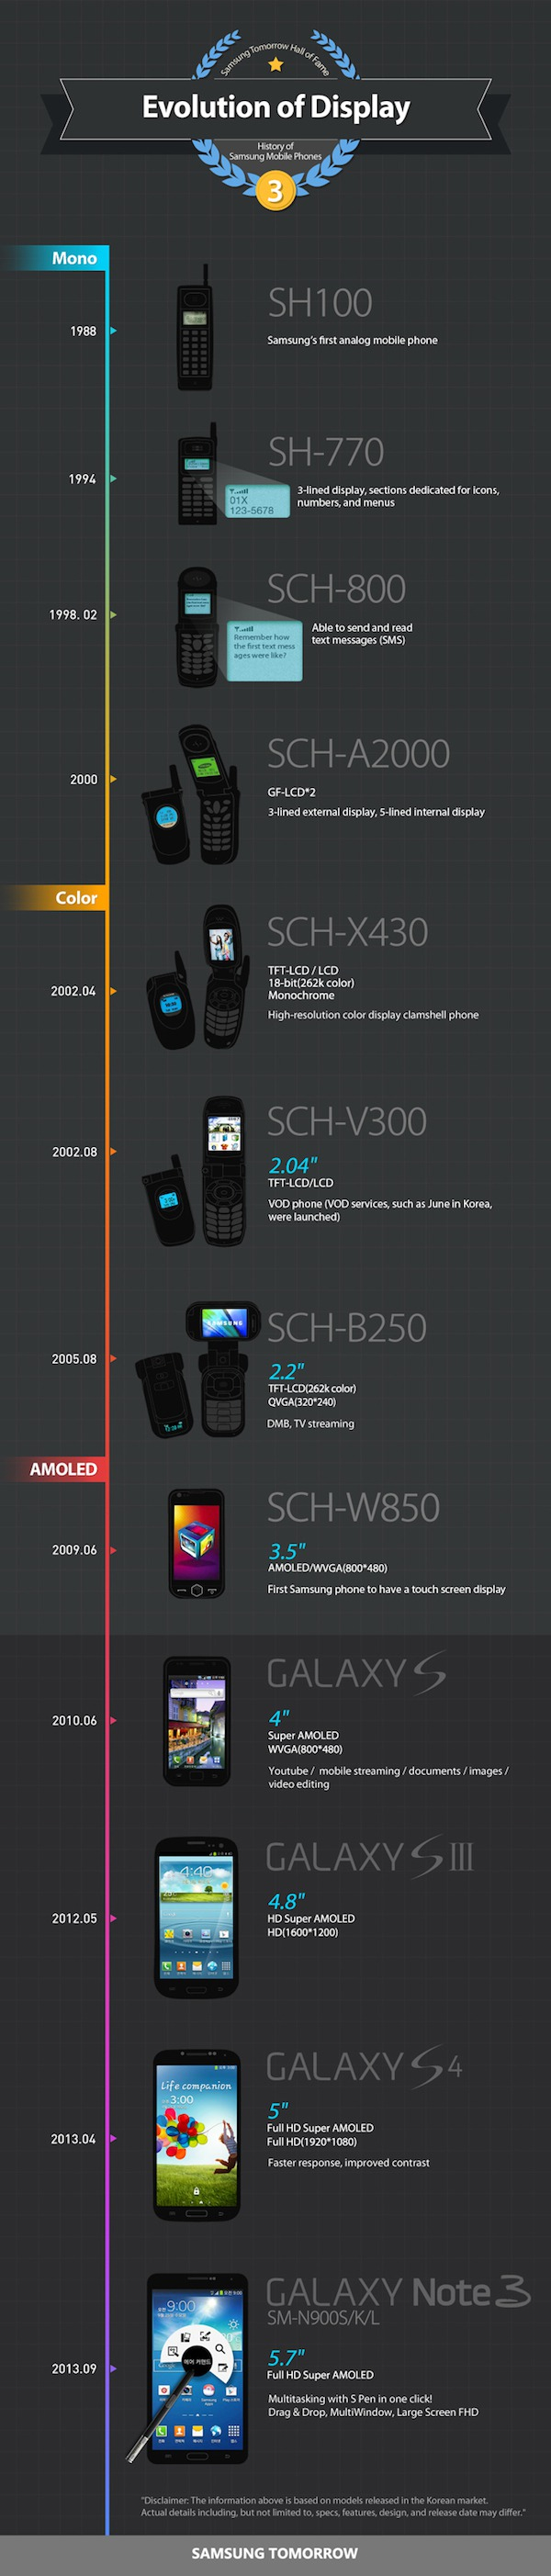 Evolution-of-Displayhistory-of-samsung-mobile-phones_ENG